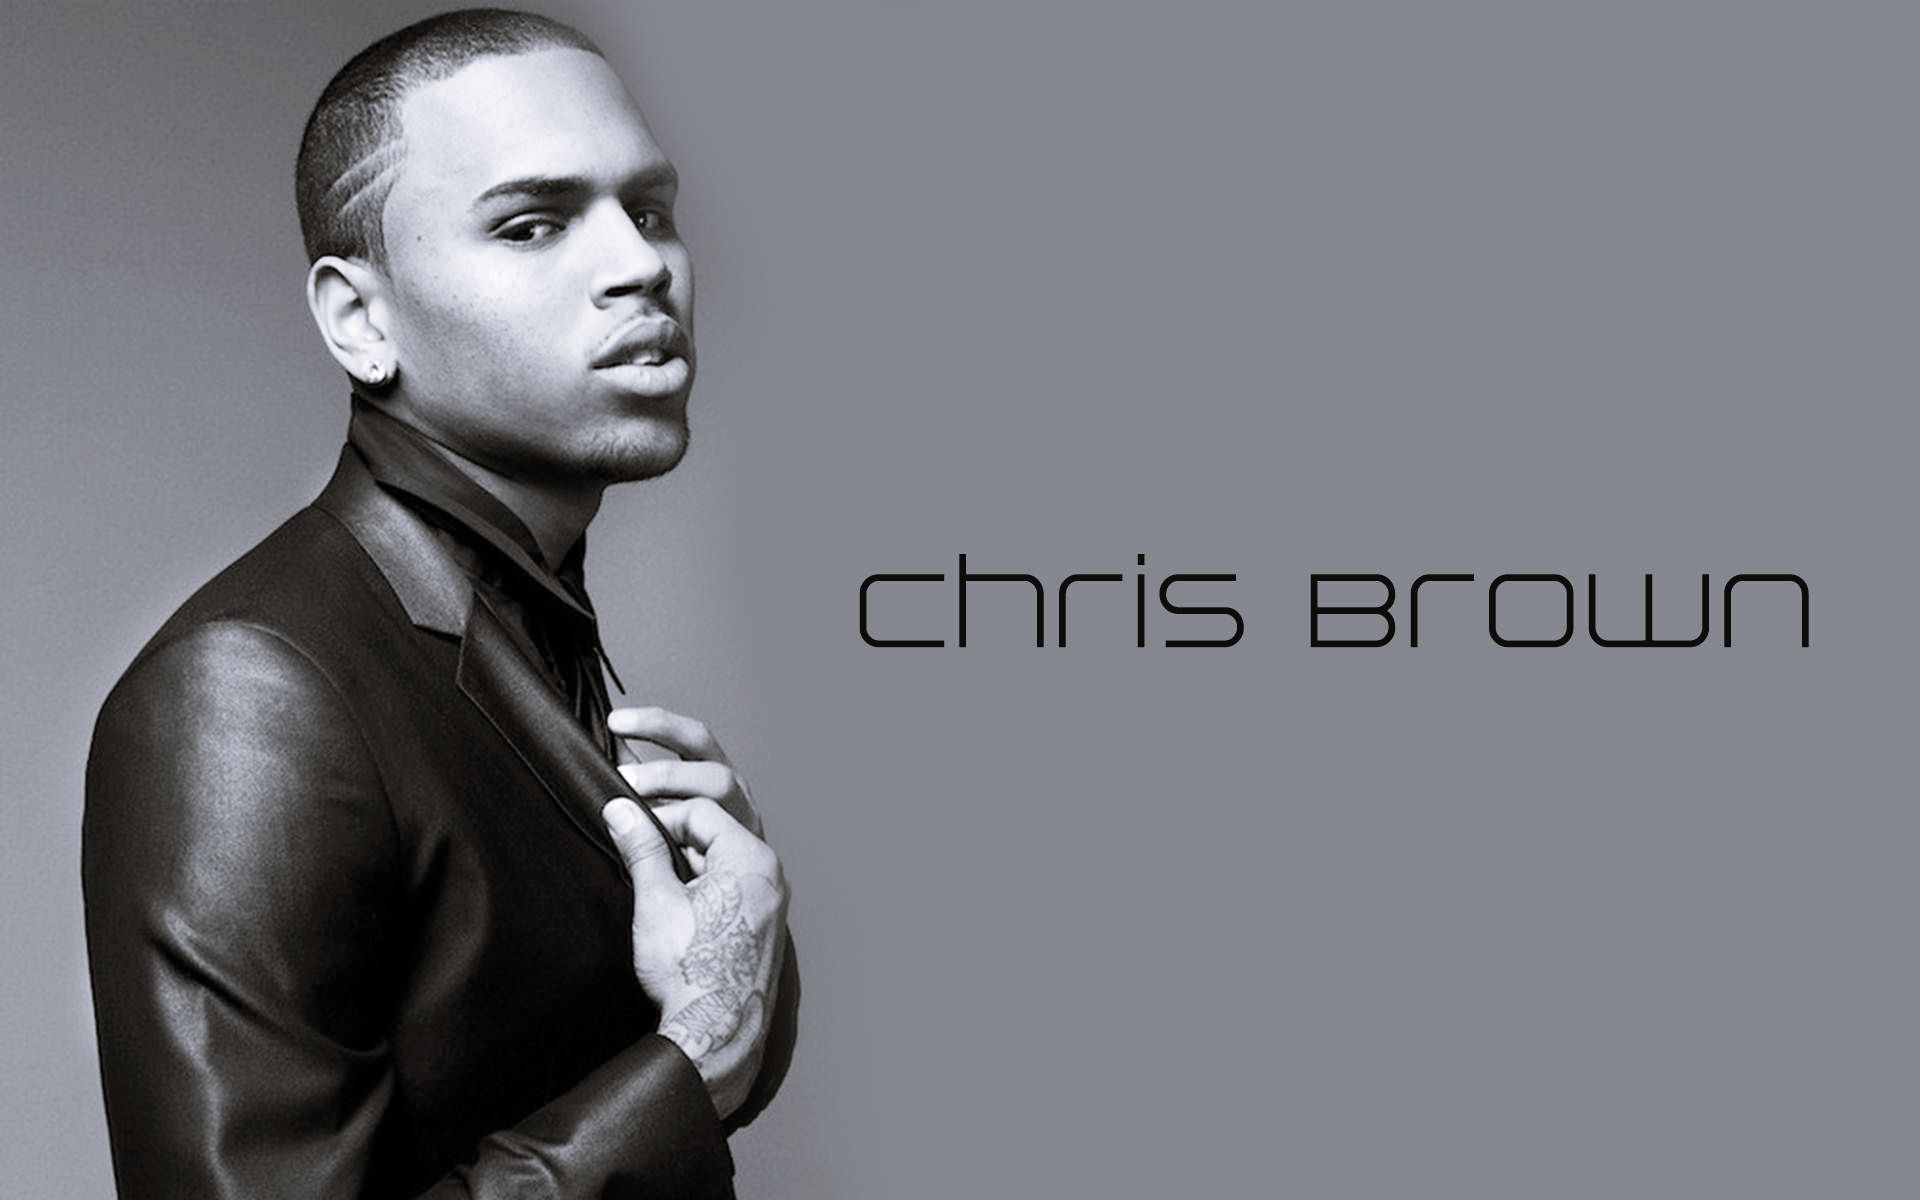 Chris Brown Full HD Wallpaper And Background Image